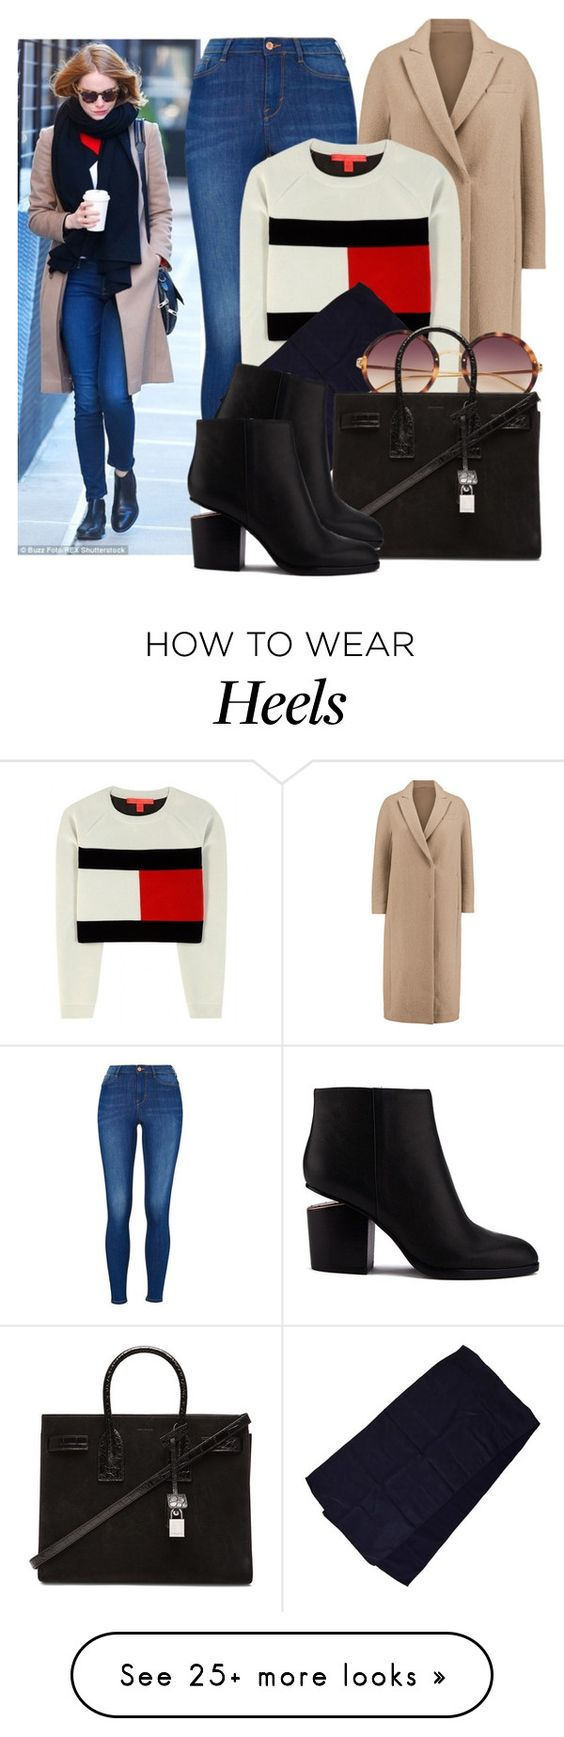 """""""Emma Stone"""" by justadream133 on Polyvore featuring mode, Brunello Cucinelli, Tommy Hilfiger, Gucci, Linda Farrow, Yves Saint Laurent, Alexander Wang, StreetStyle, EmmaStone et CelebrityStyle"""